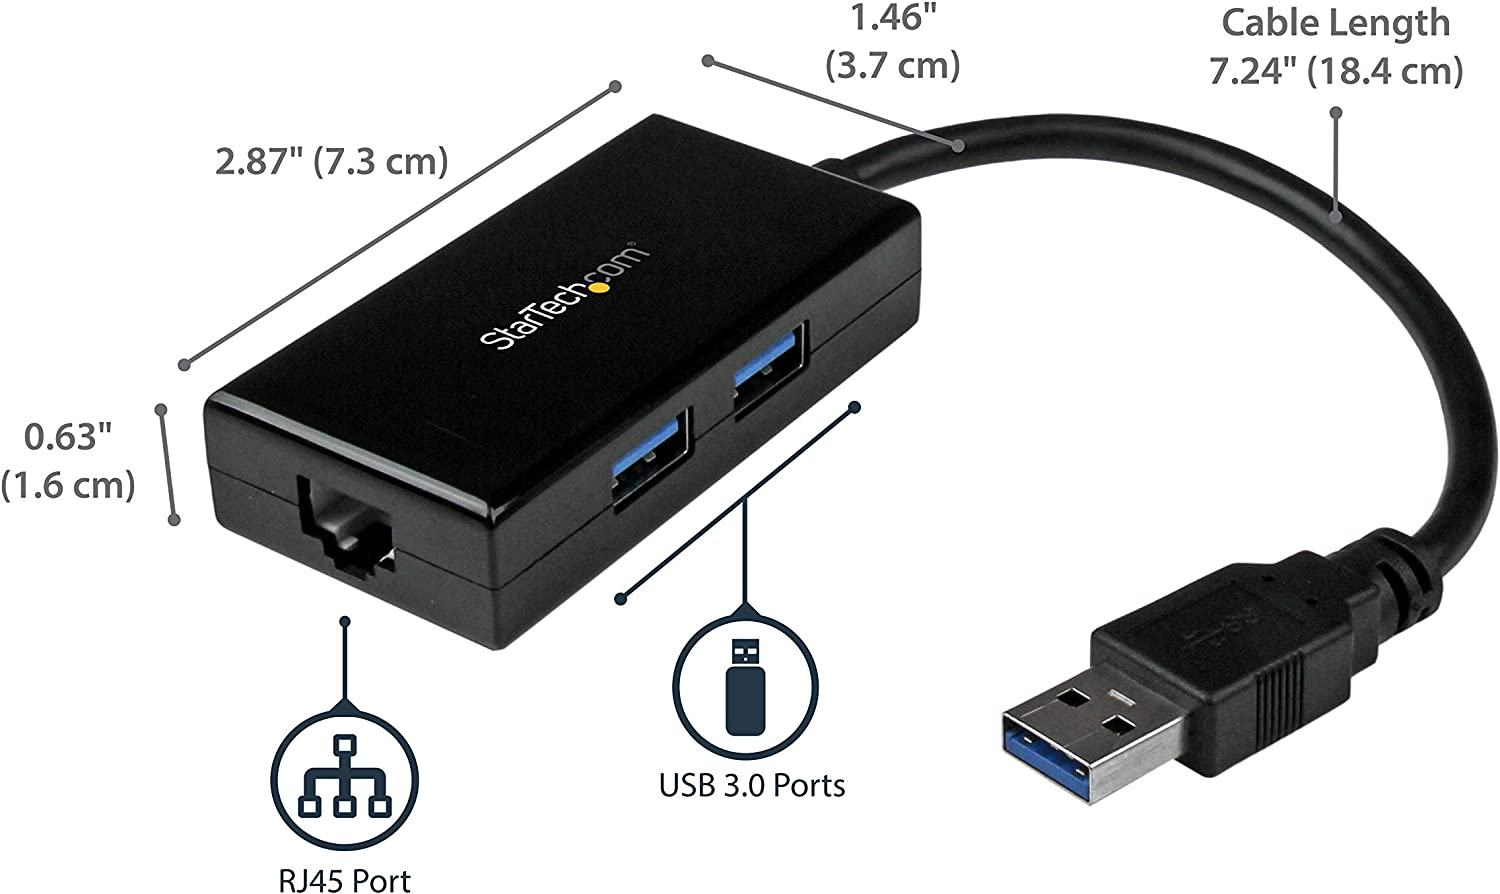 USB Network Adapter,LAN Adapter with Multi USB 3.0 Ports Compatible with The Toshiba Dynabook Port/ég/é X30 Broonel USB Ethernet